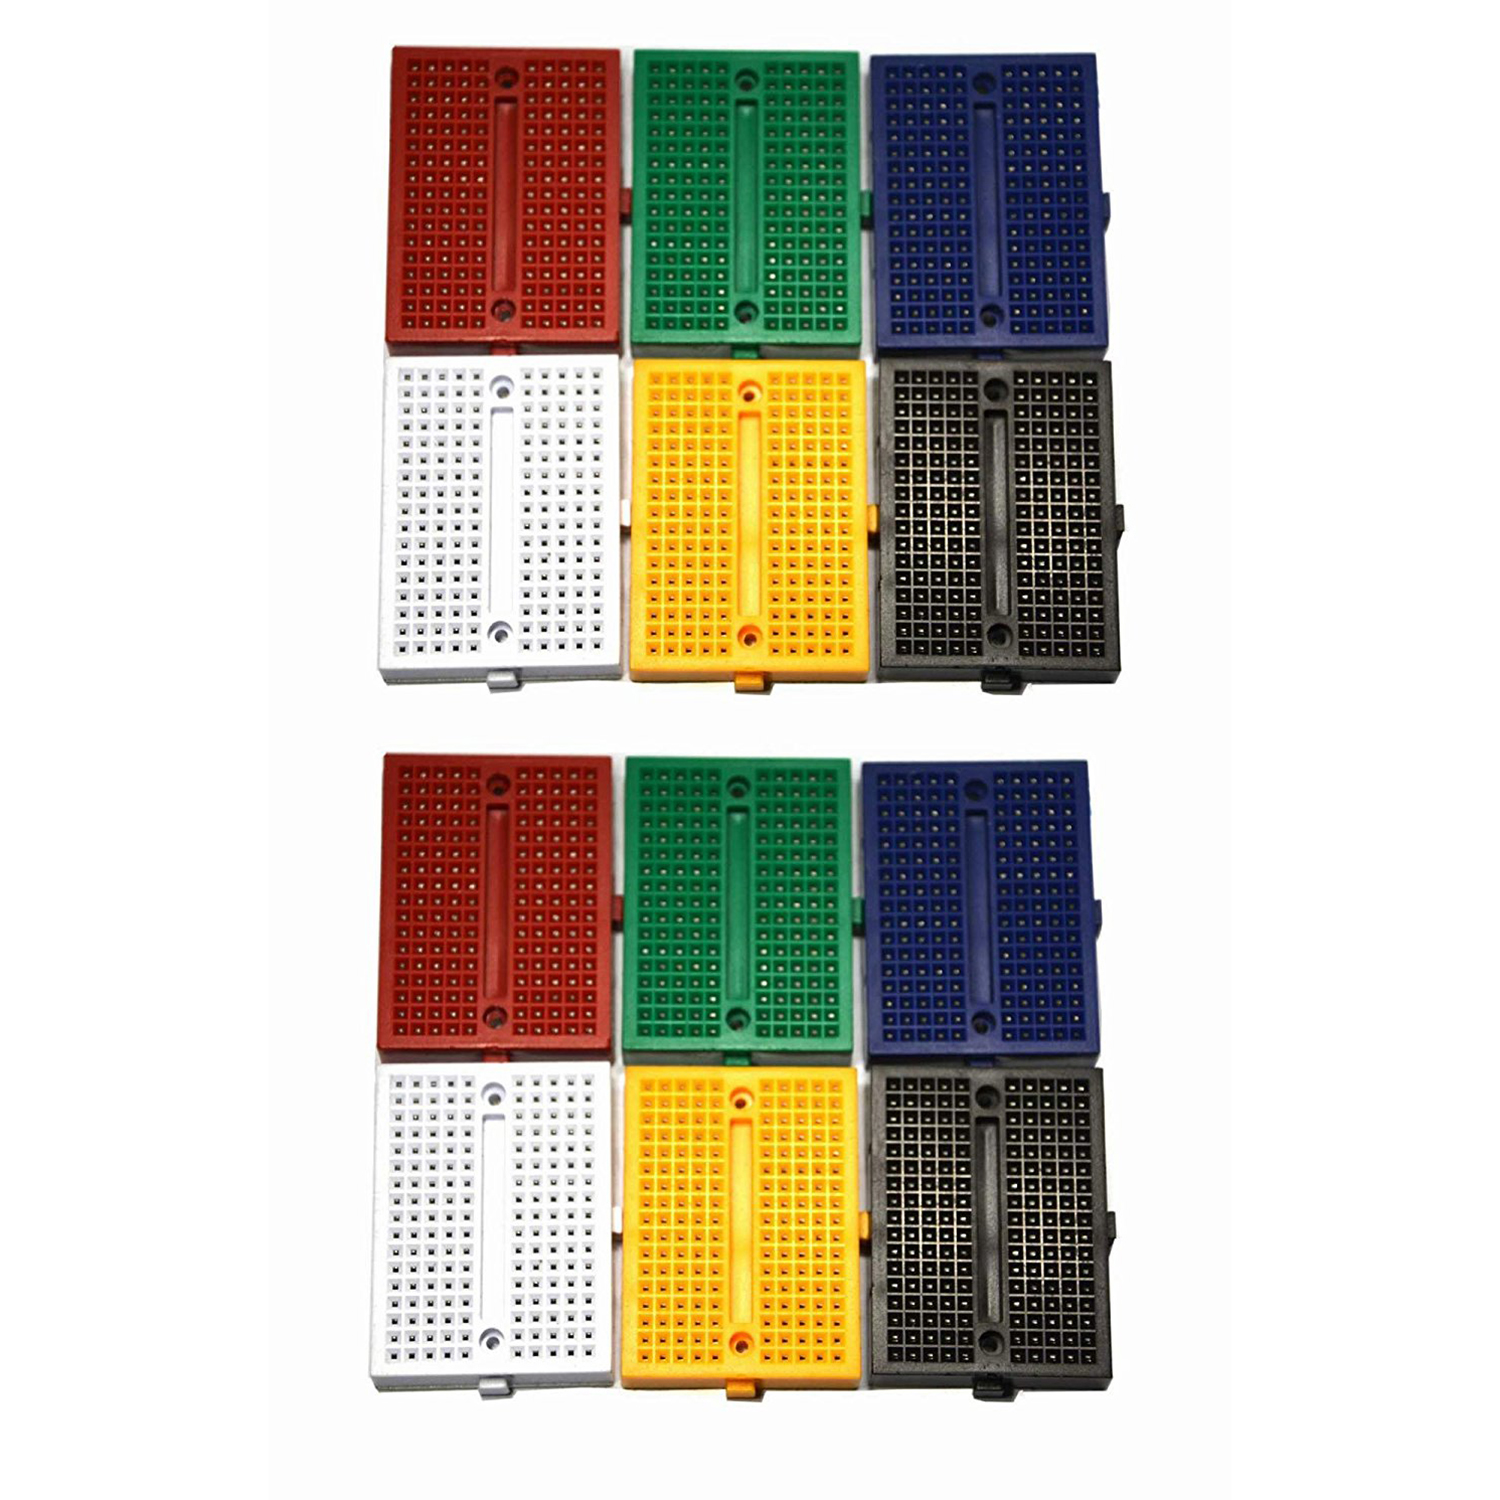 THGS 12Packs 170 Points Mini Small solderless breadboard for Arduino Proto Shield (6 colors) bbw005 170 points mini breadboard for arduino proto shield works with official arduino boards